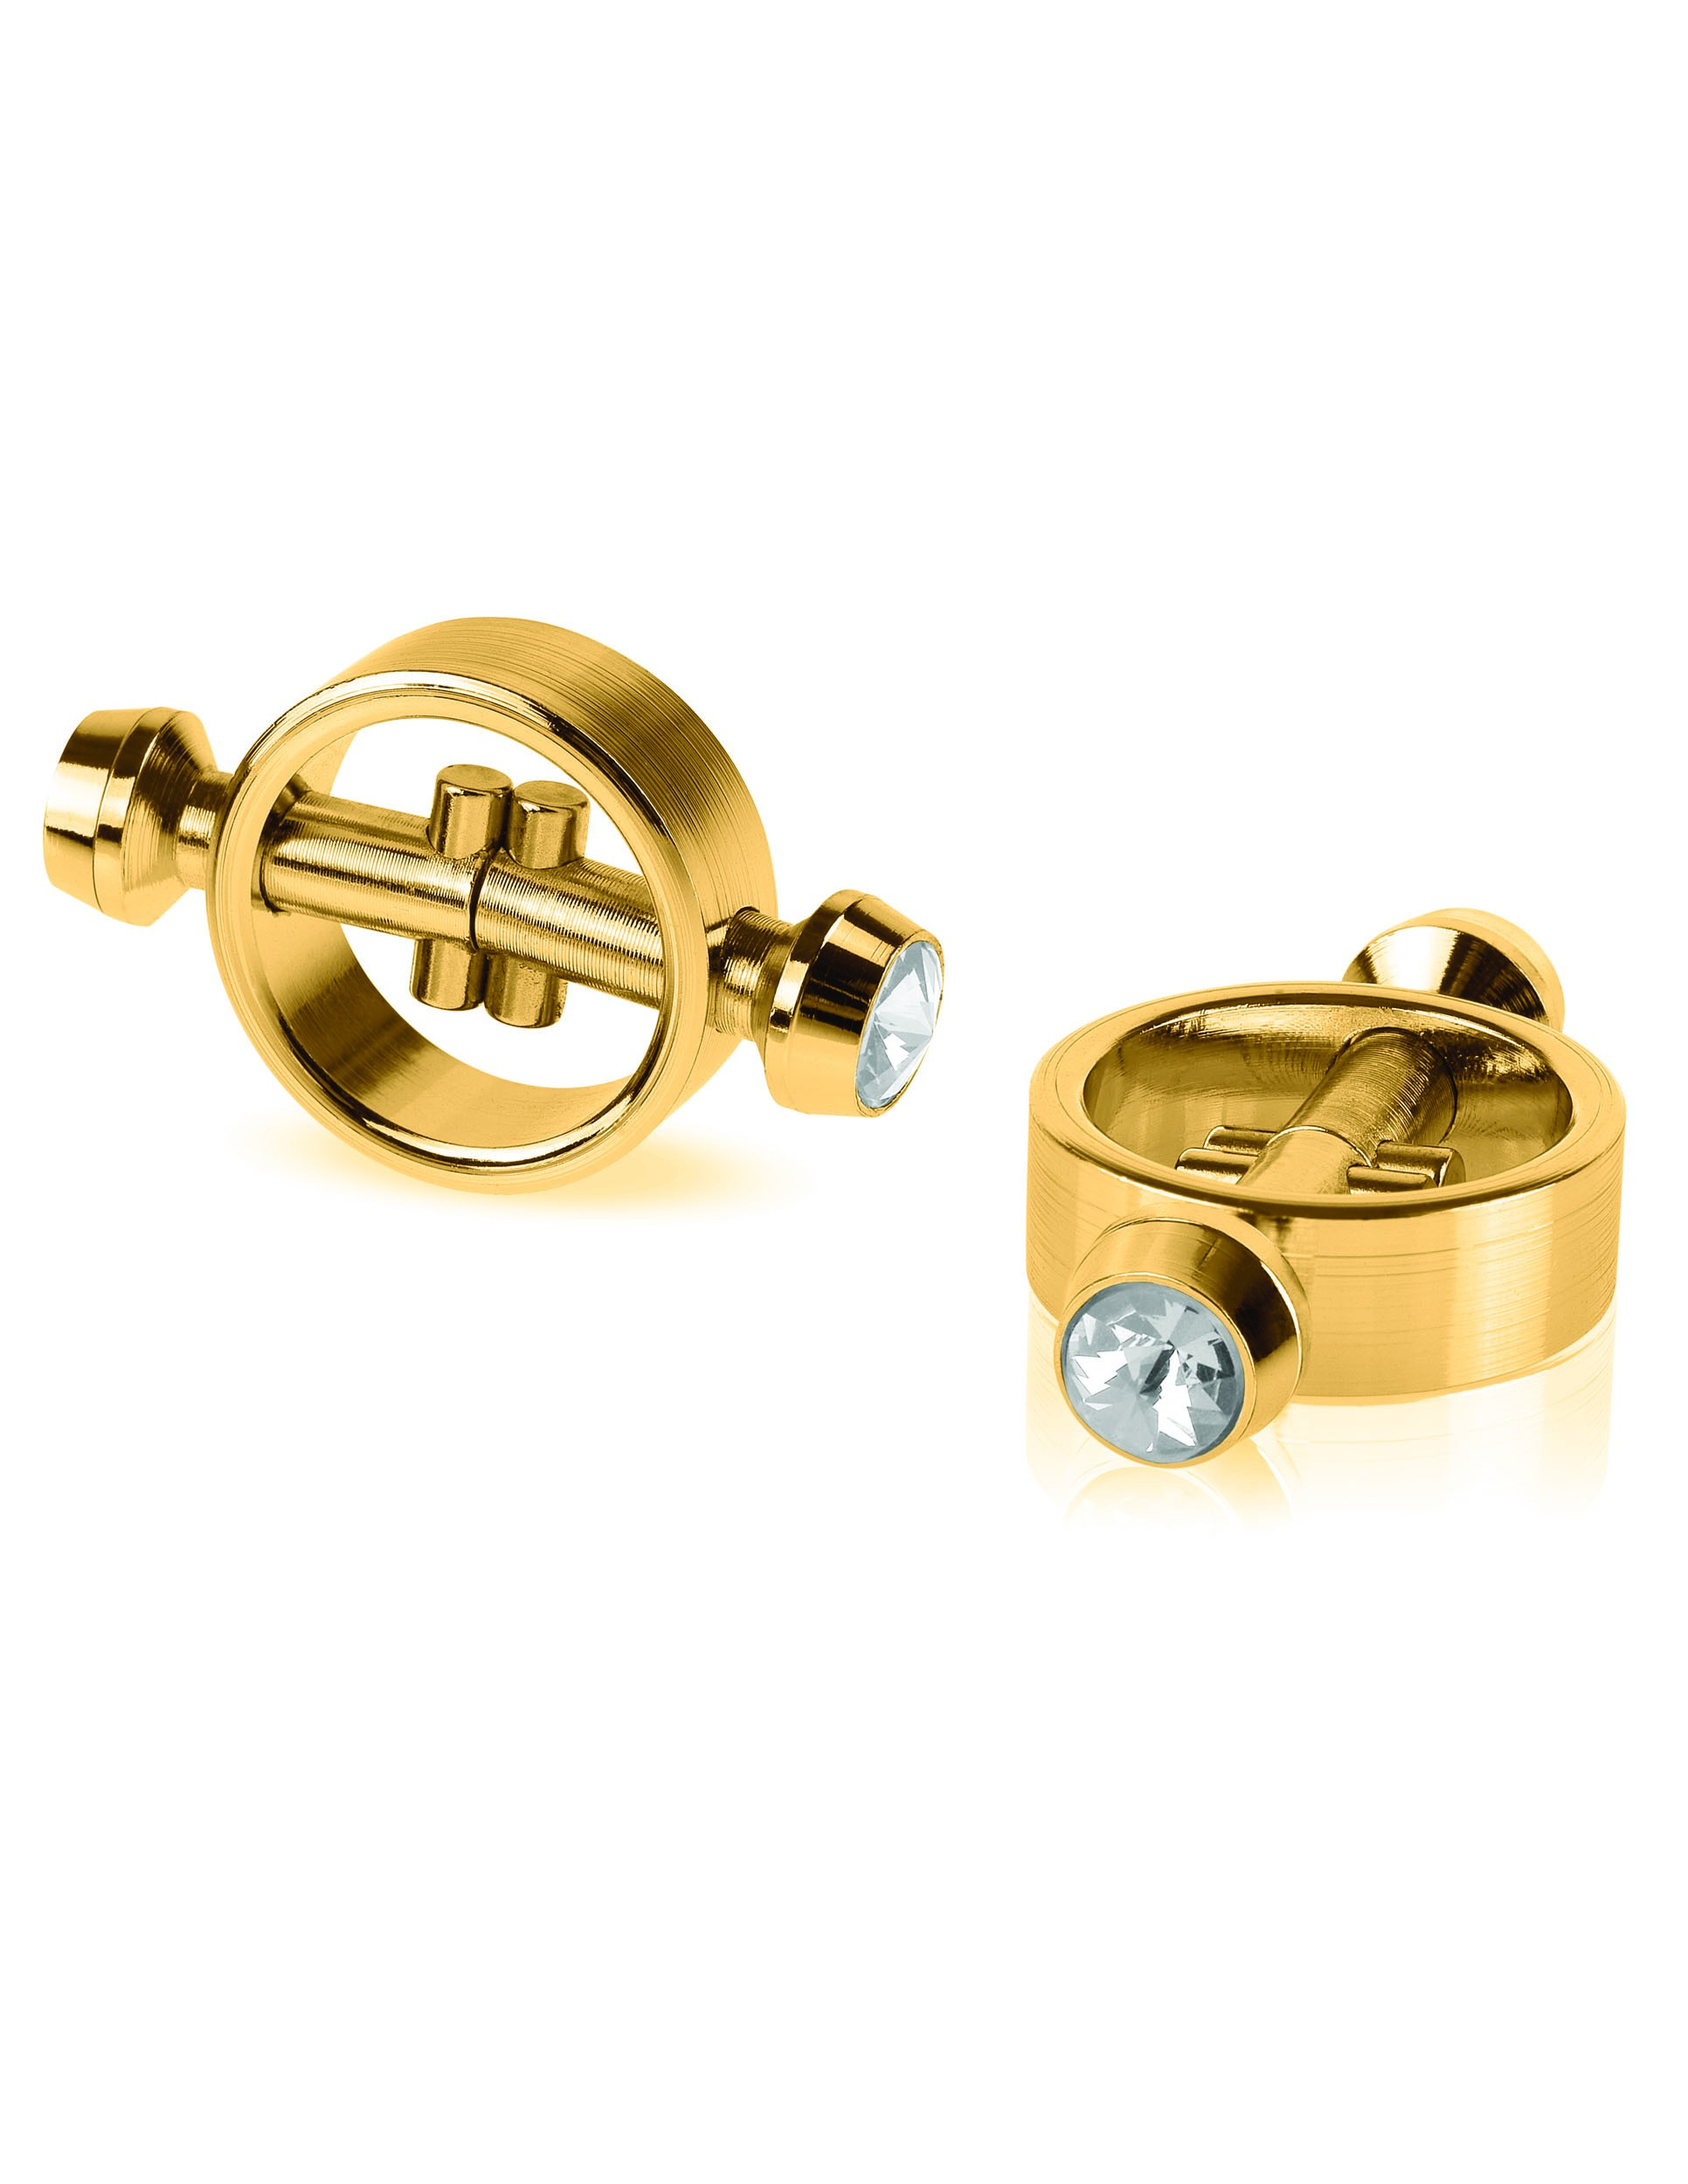 GOLD MAGNETIC CLAMPS